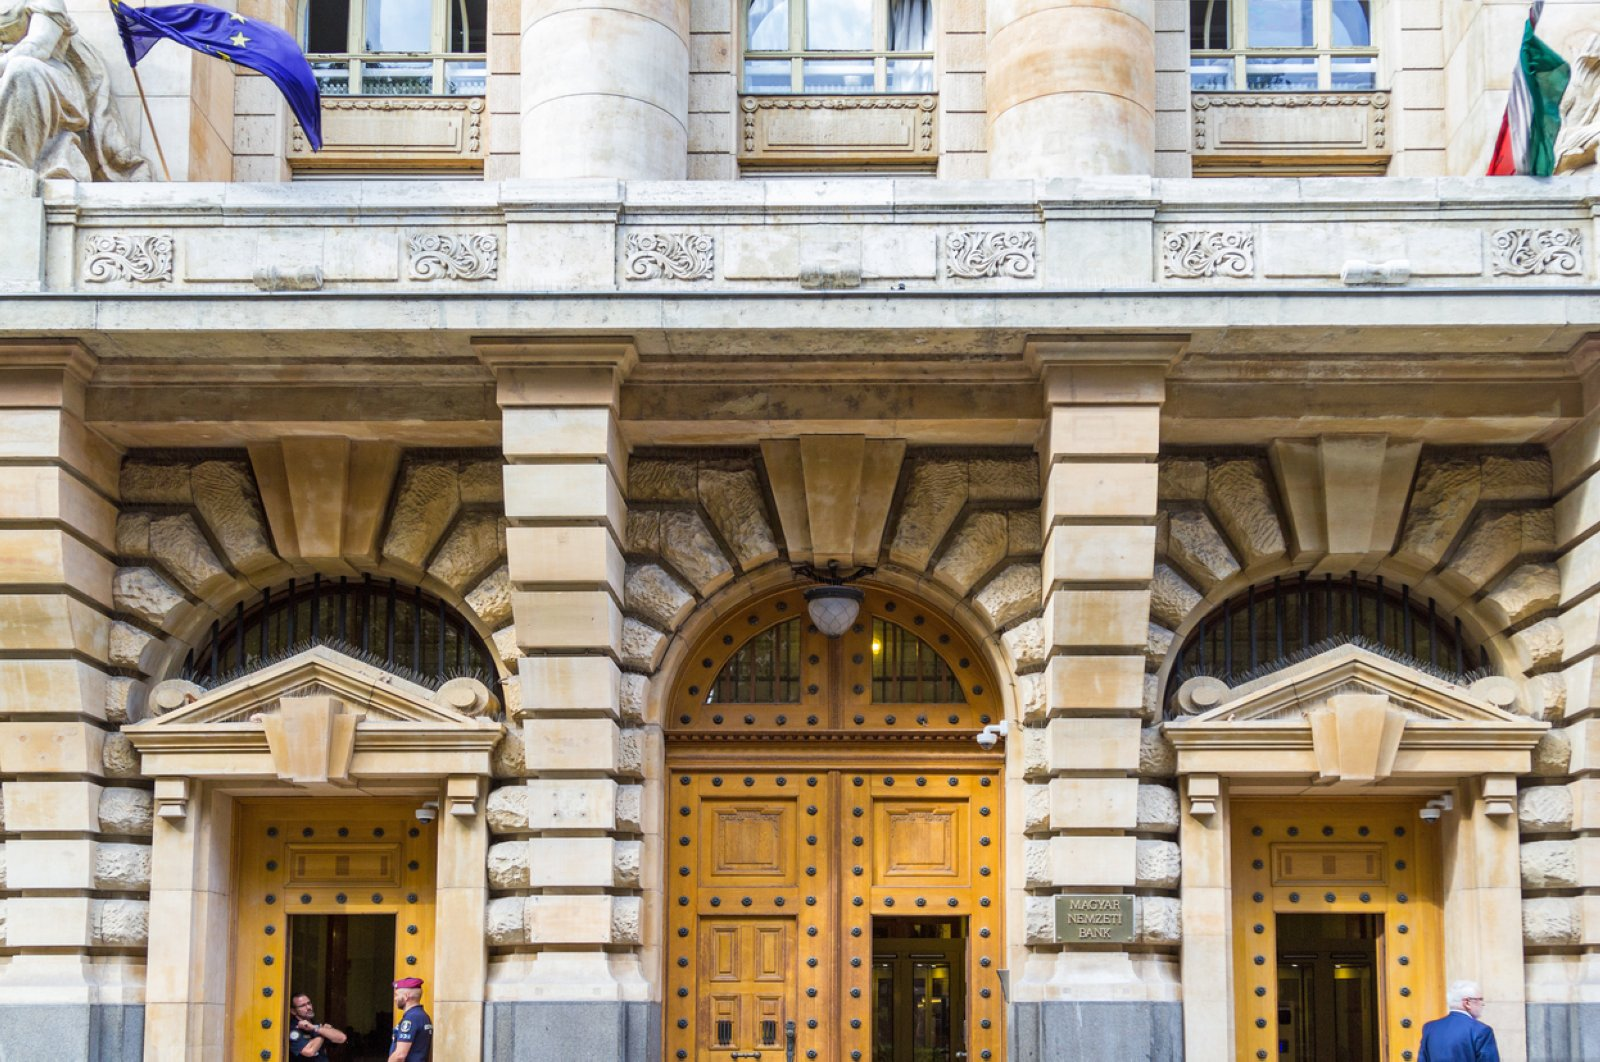 The Central Bank of Hungary seen in the central of Budapest in this file photo from Sept. 17, 2019. (iStock Photo)